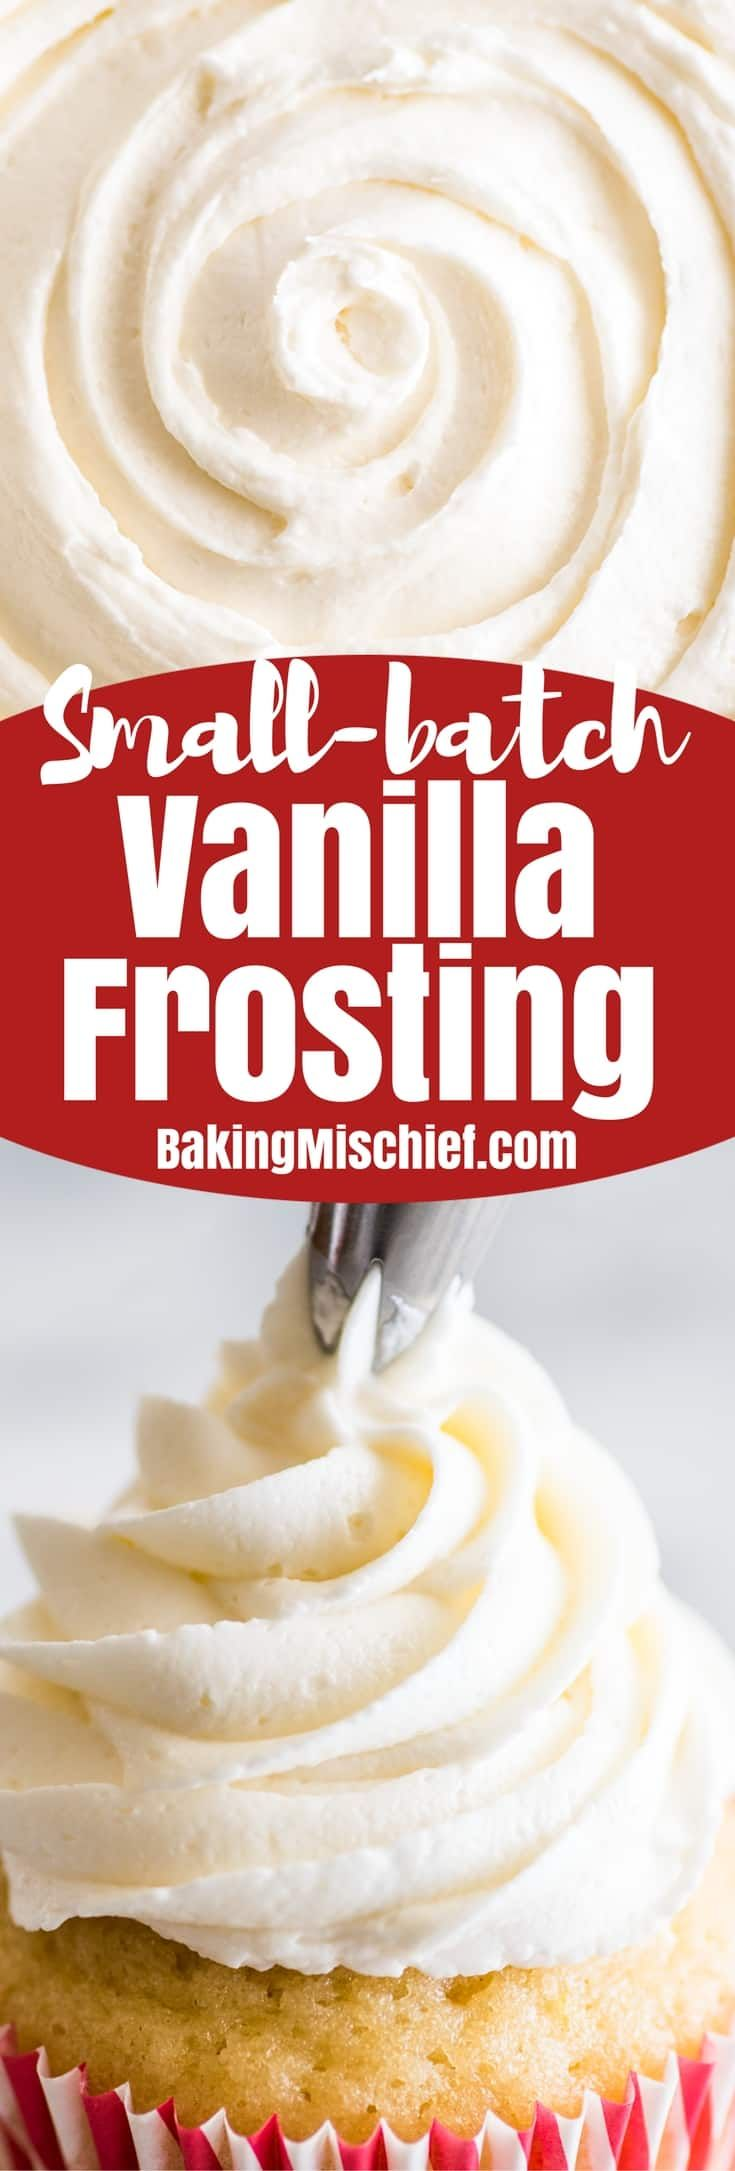 This is the perfect Small-batch Vanilla Frosting recipe. It's rich, delicious, and so easy to make. | #frosting | #smallbatch | #dessert |